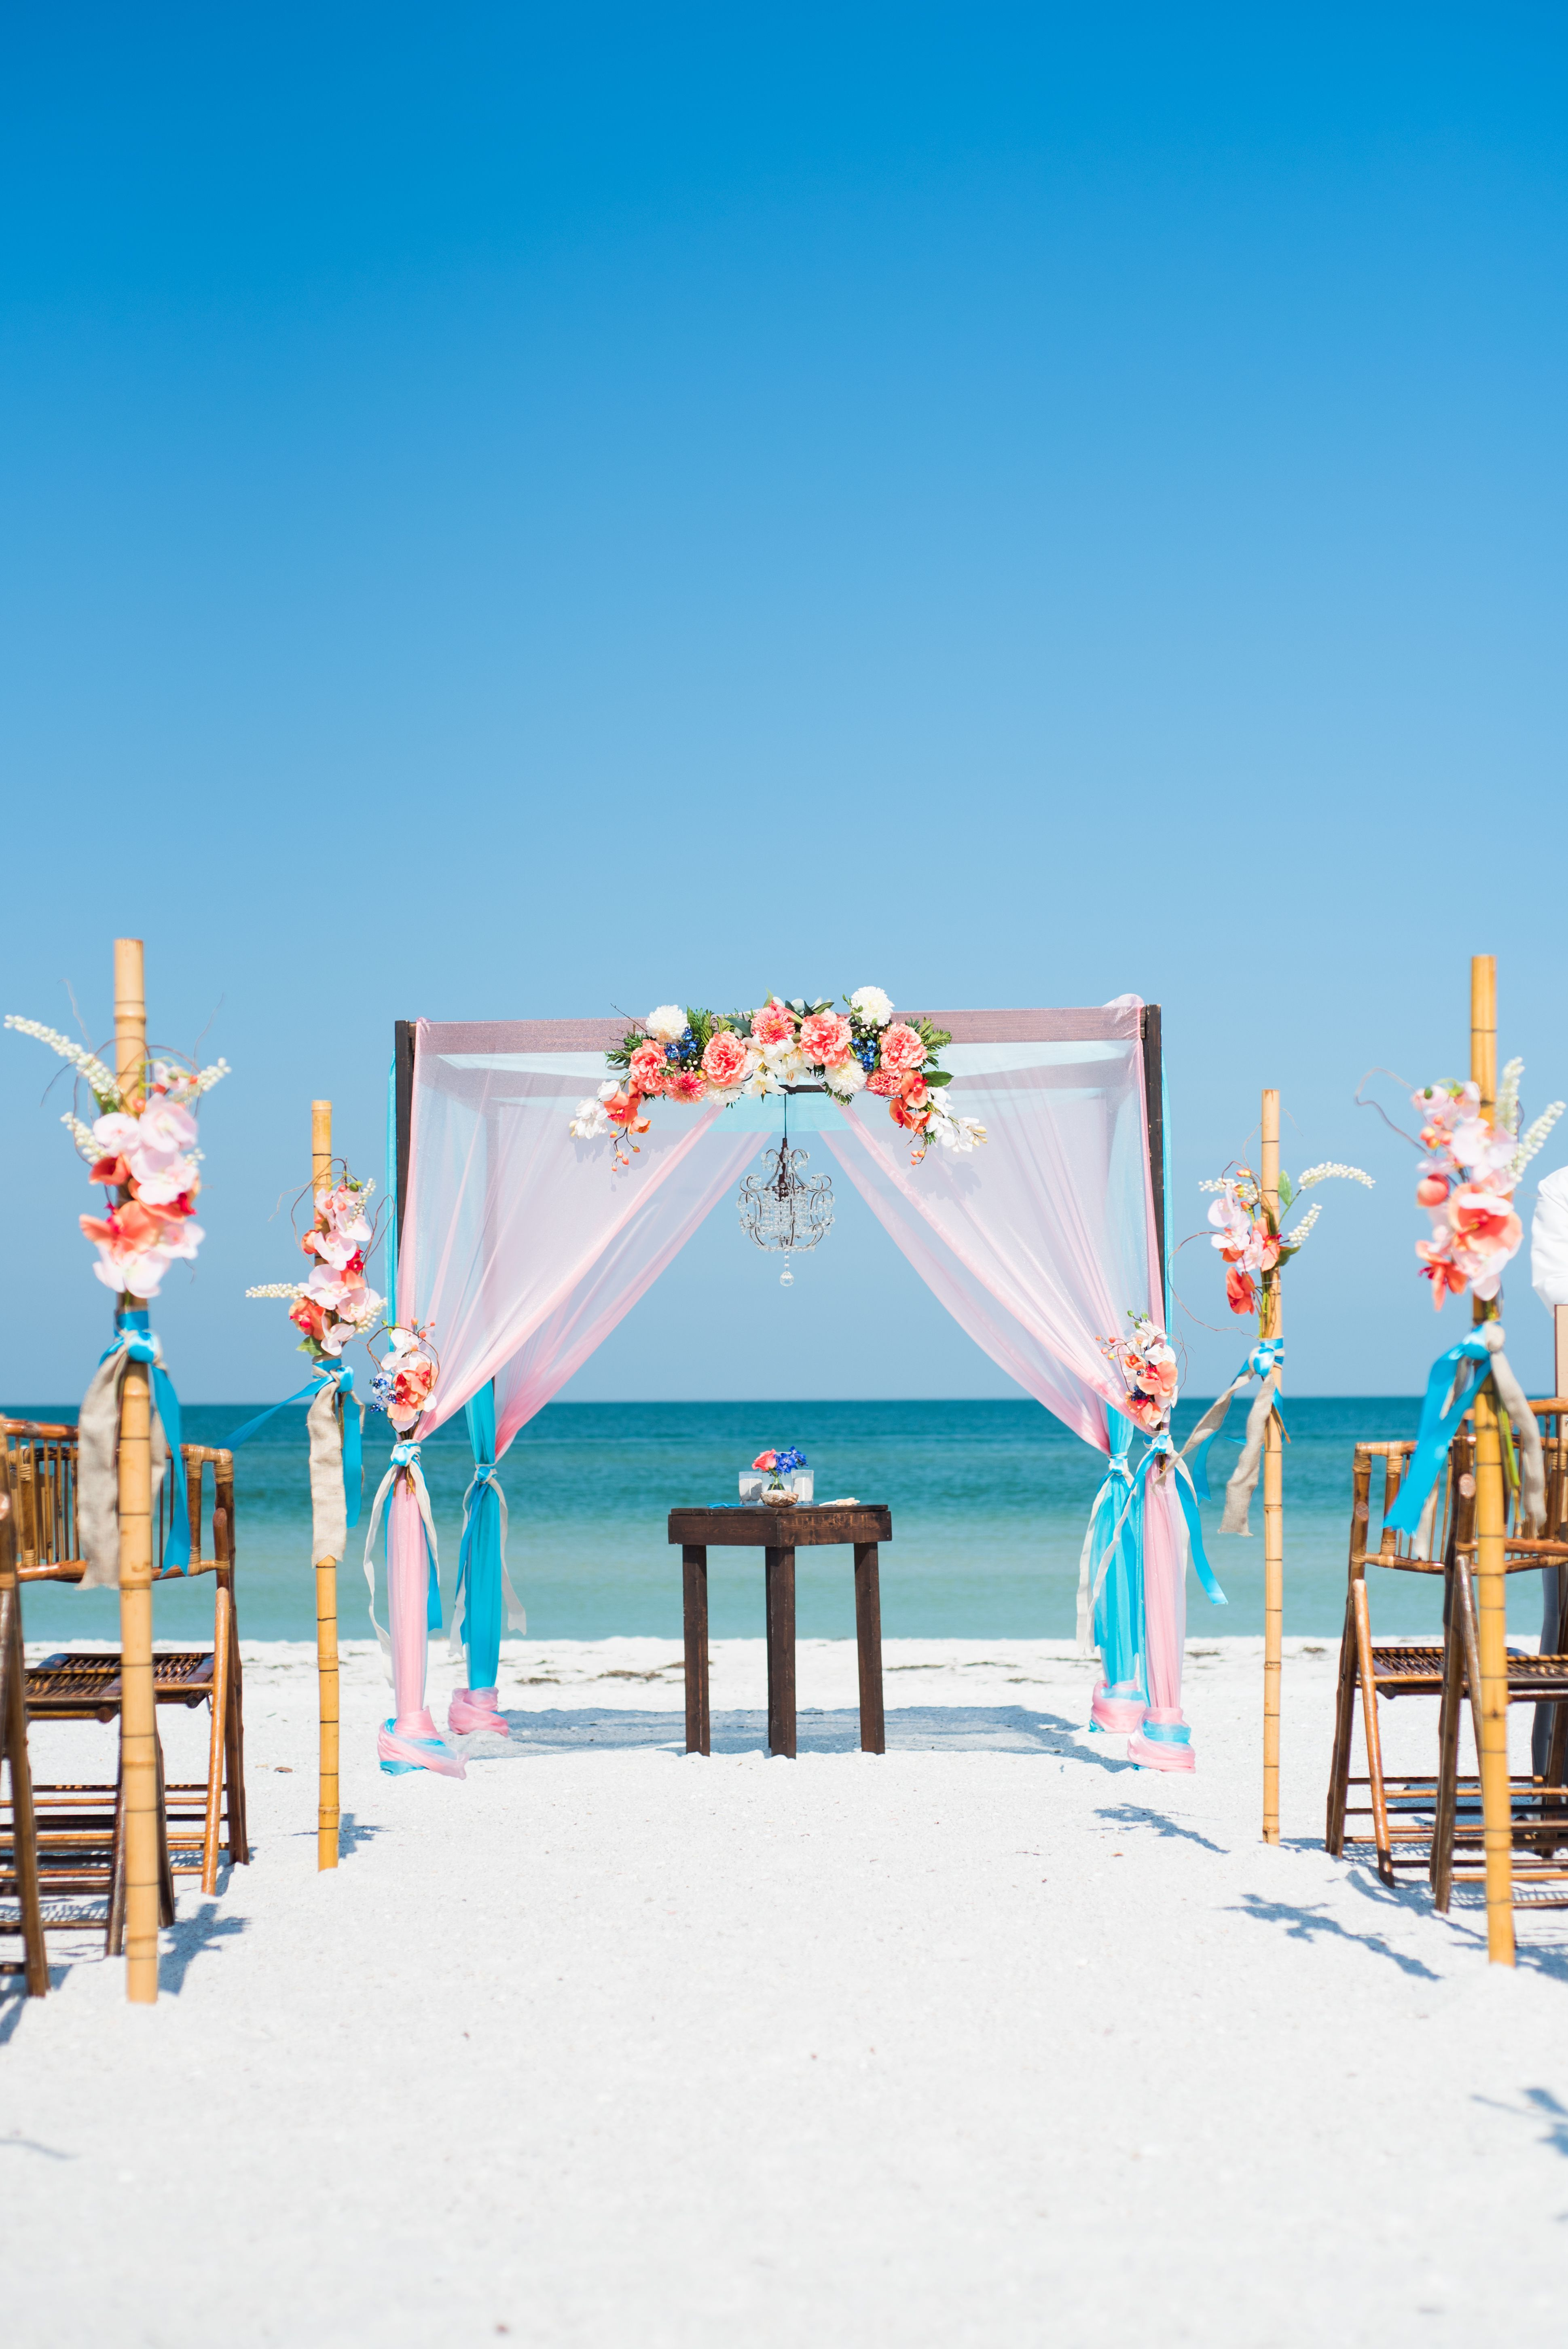 ImagineToursNH Karisma Hotel Destination Weddings All Inclusive